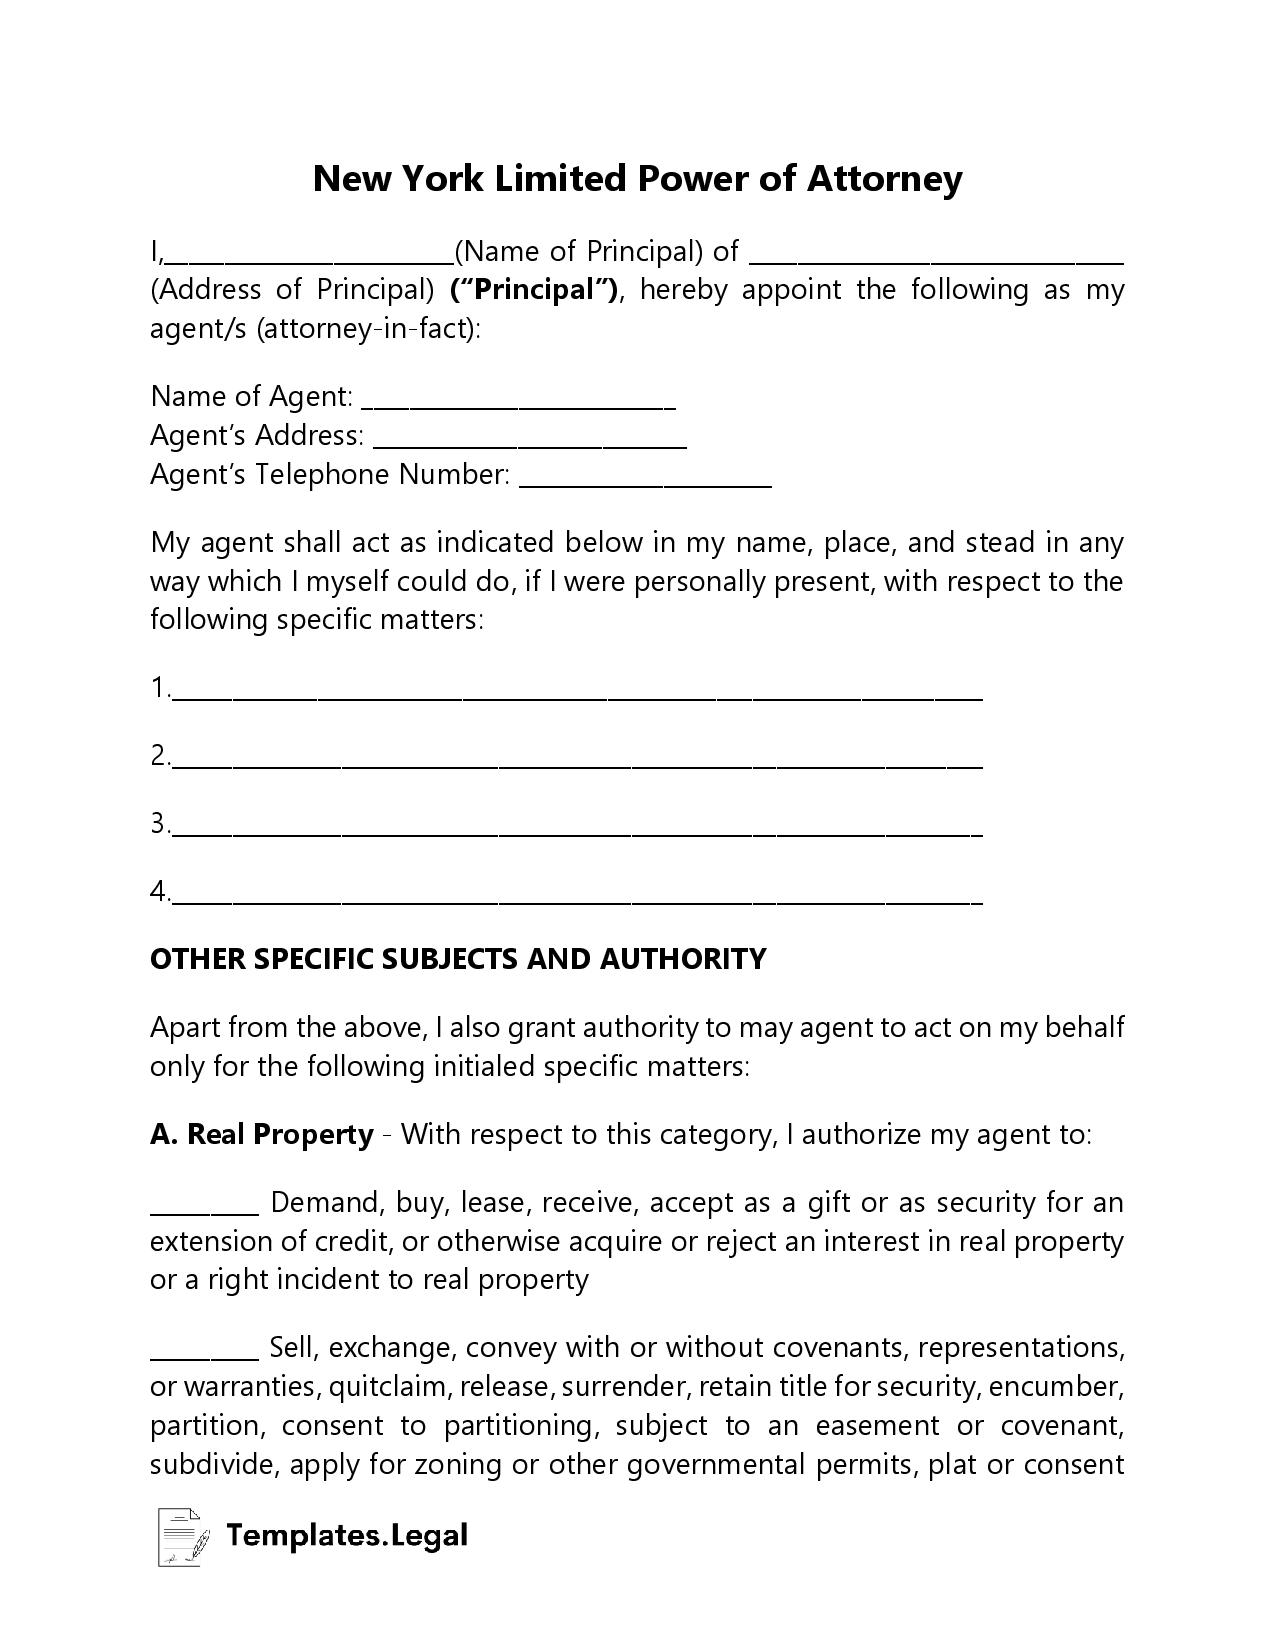 New York Limited Power of Attorney - Templates.Legal